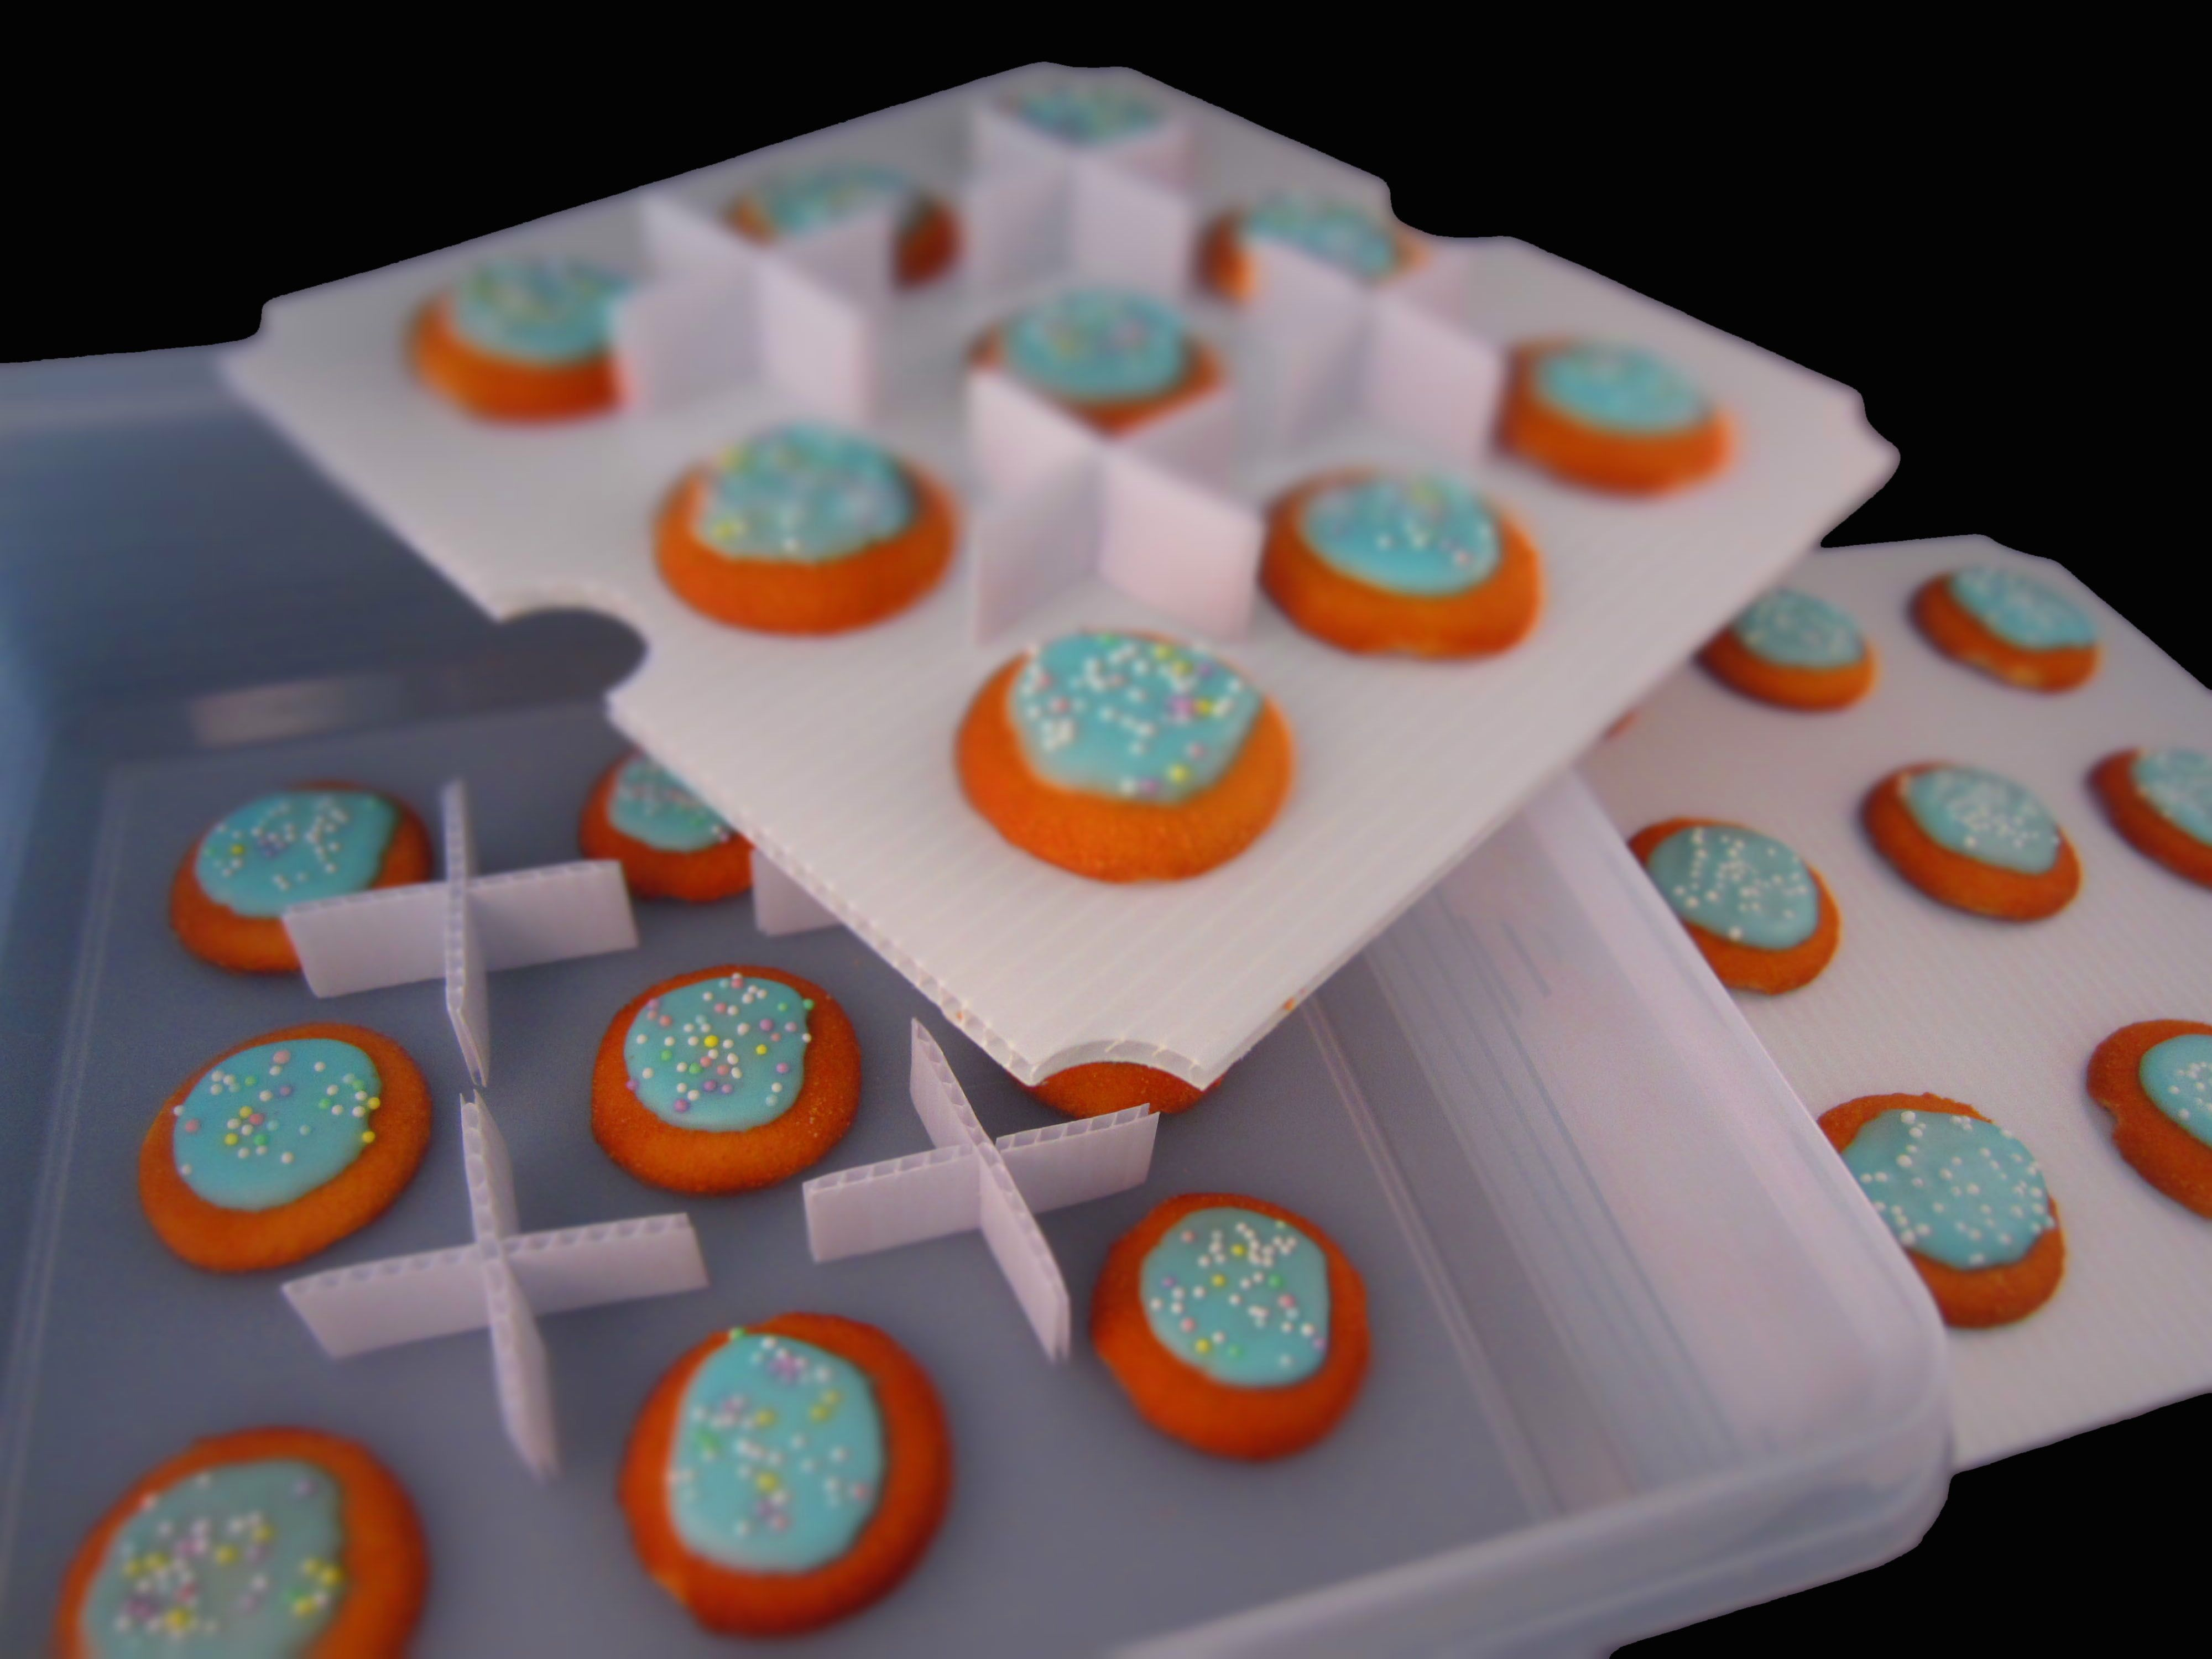 Separate, Stack And Store Your Cookies On Trays Using The